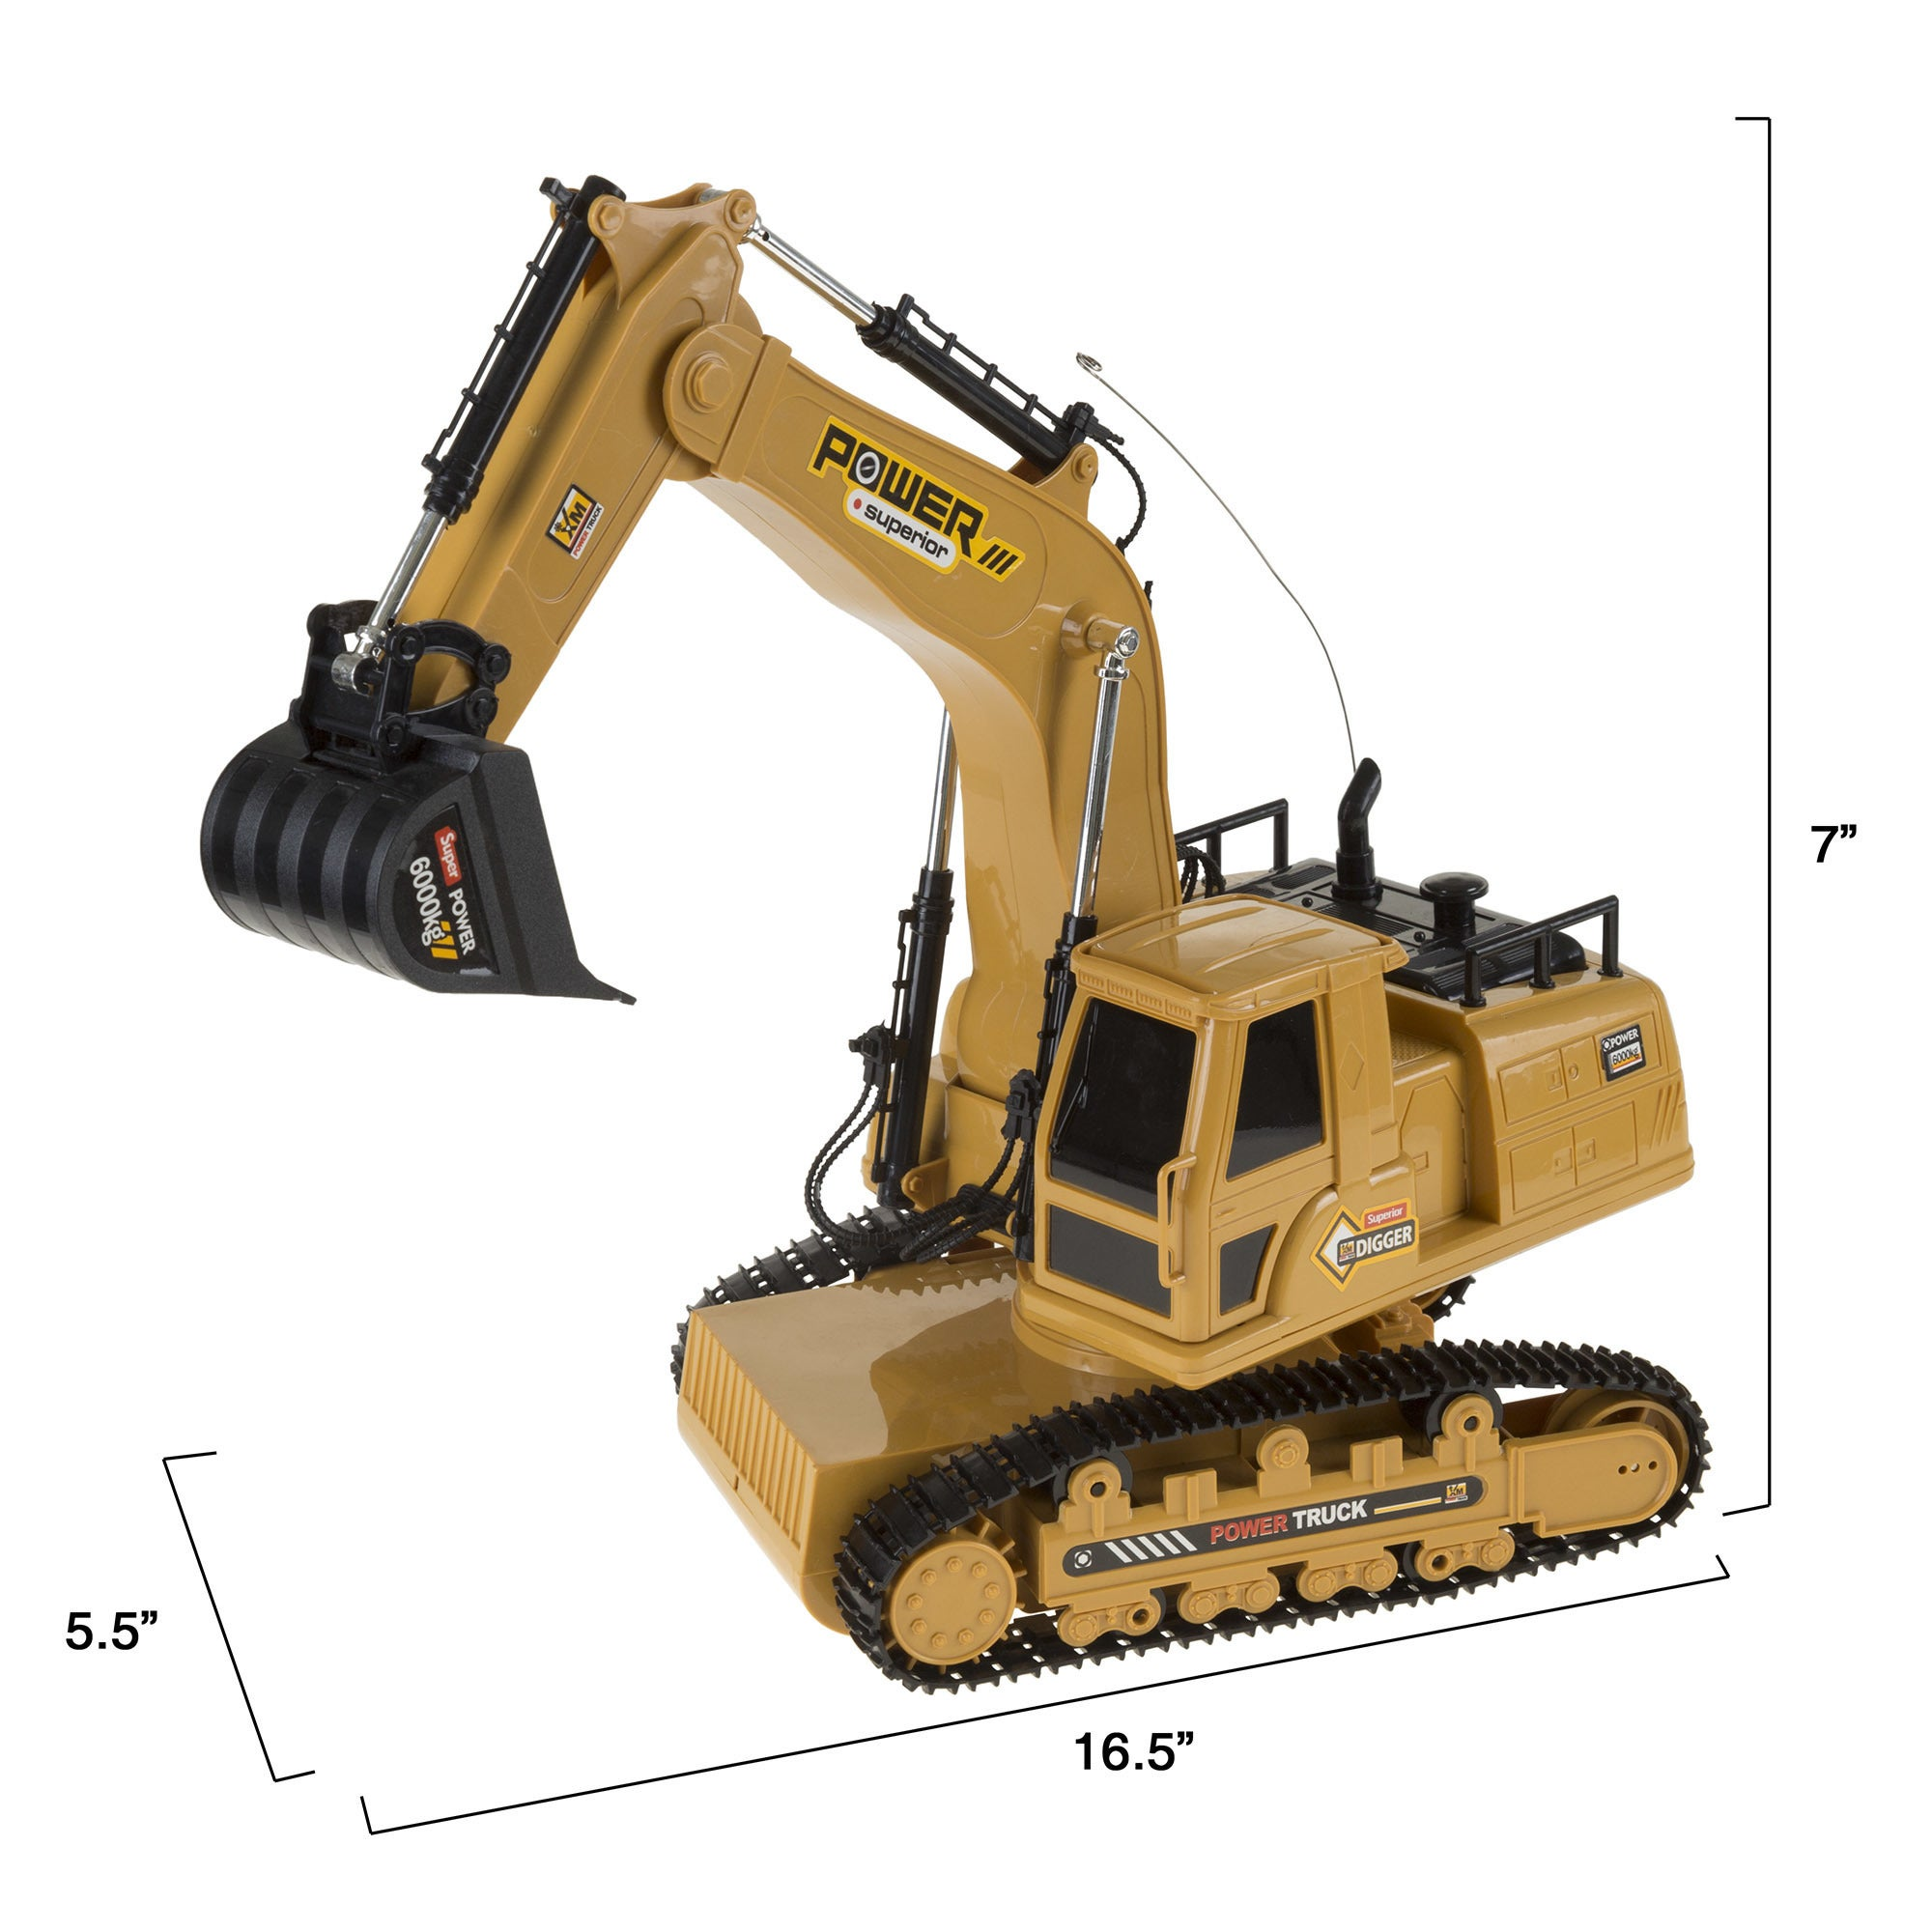 Shop Hey Play Remote Control Tractor Excavator Construction Toy